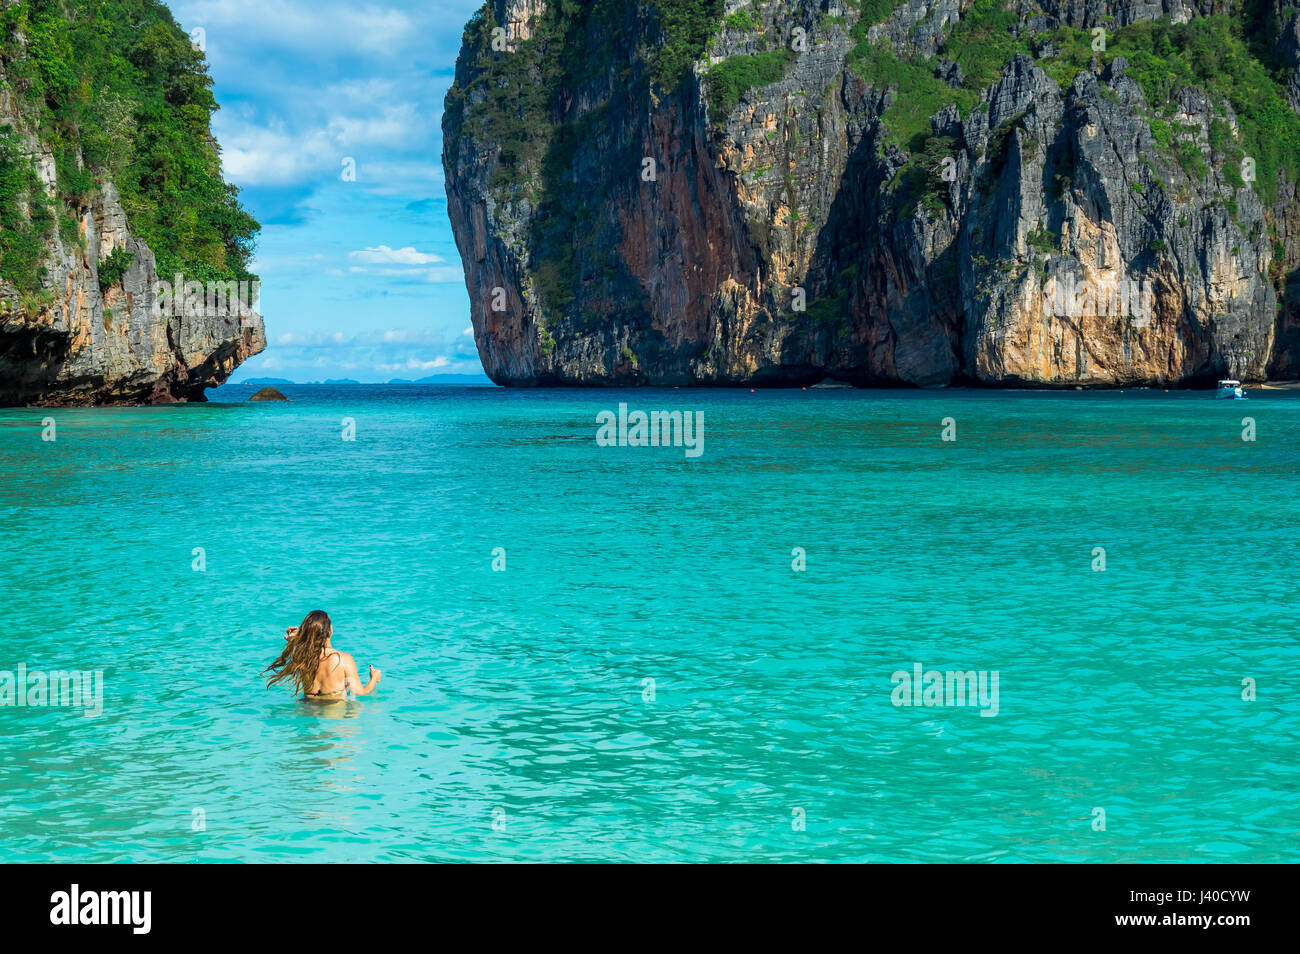 Scenic View of Woman by Sea Against Rock formations - Stock Image